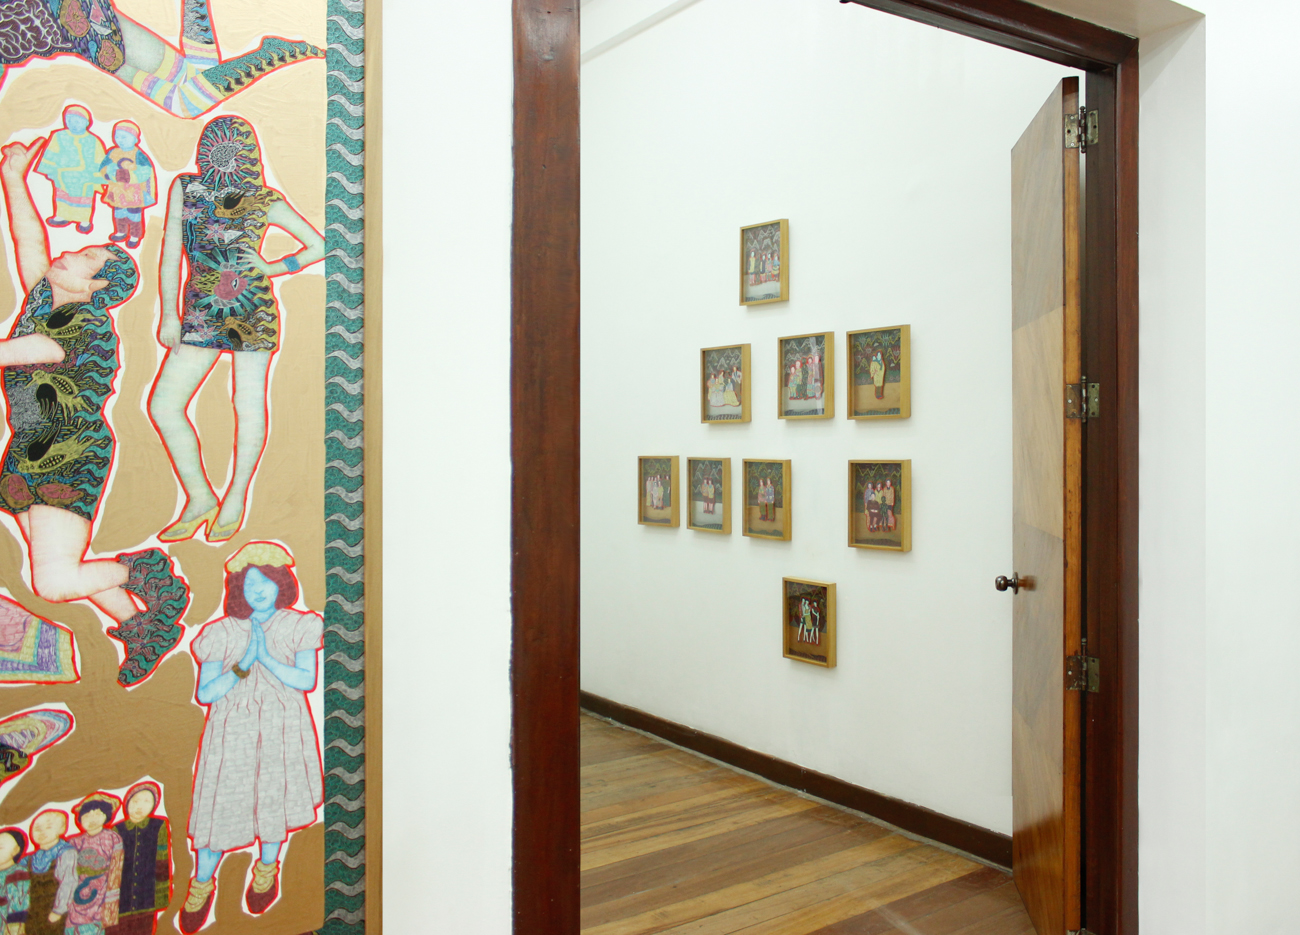 Installation view, Identity Crisis (left) & Timeline (right);artworks by Dexter Sy